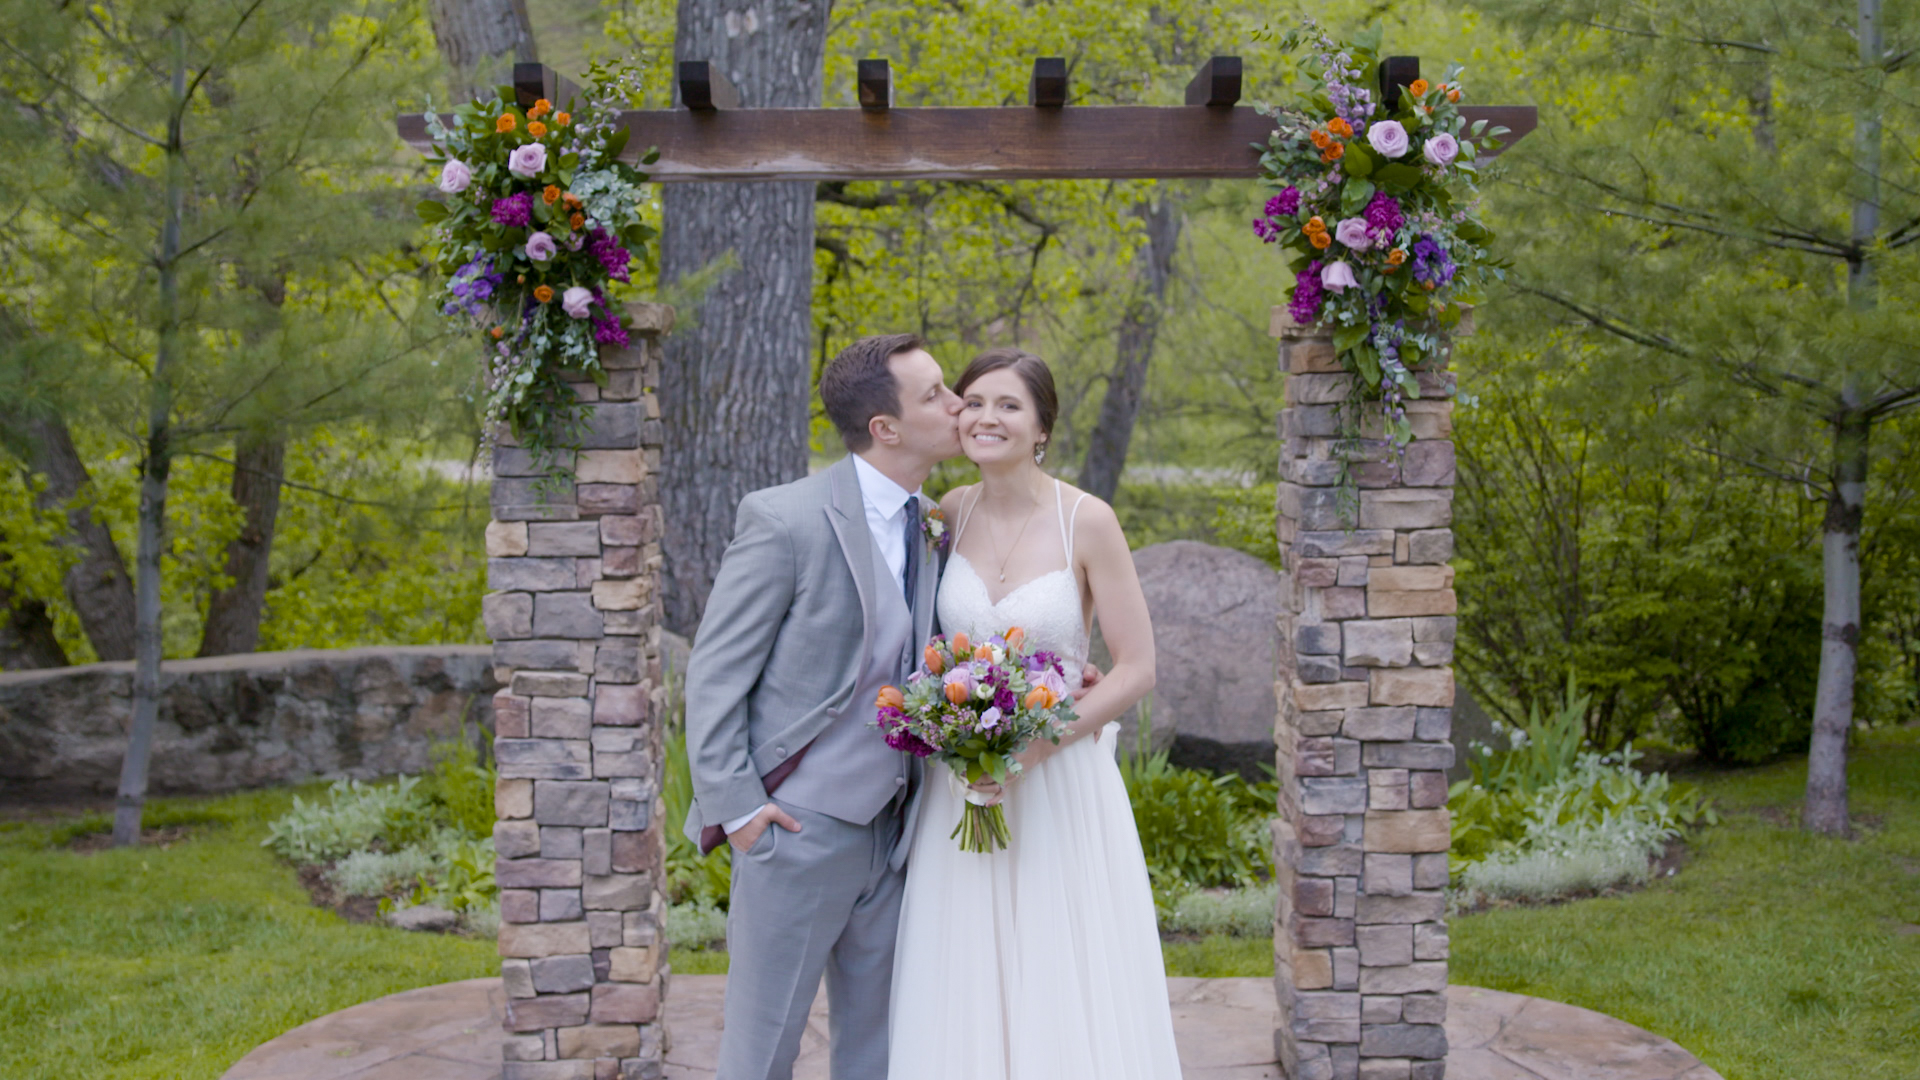 Whitney & Adam Wedding Ceremony at Wedgewood Boulder Creek